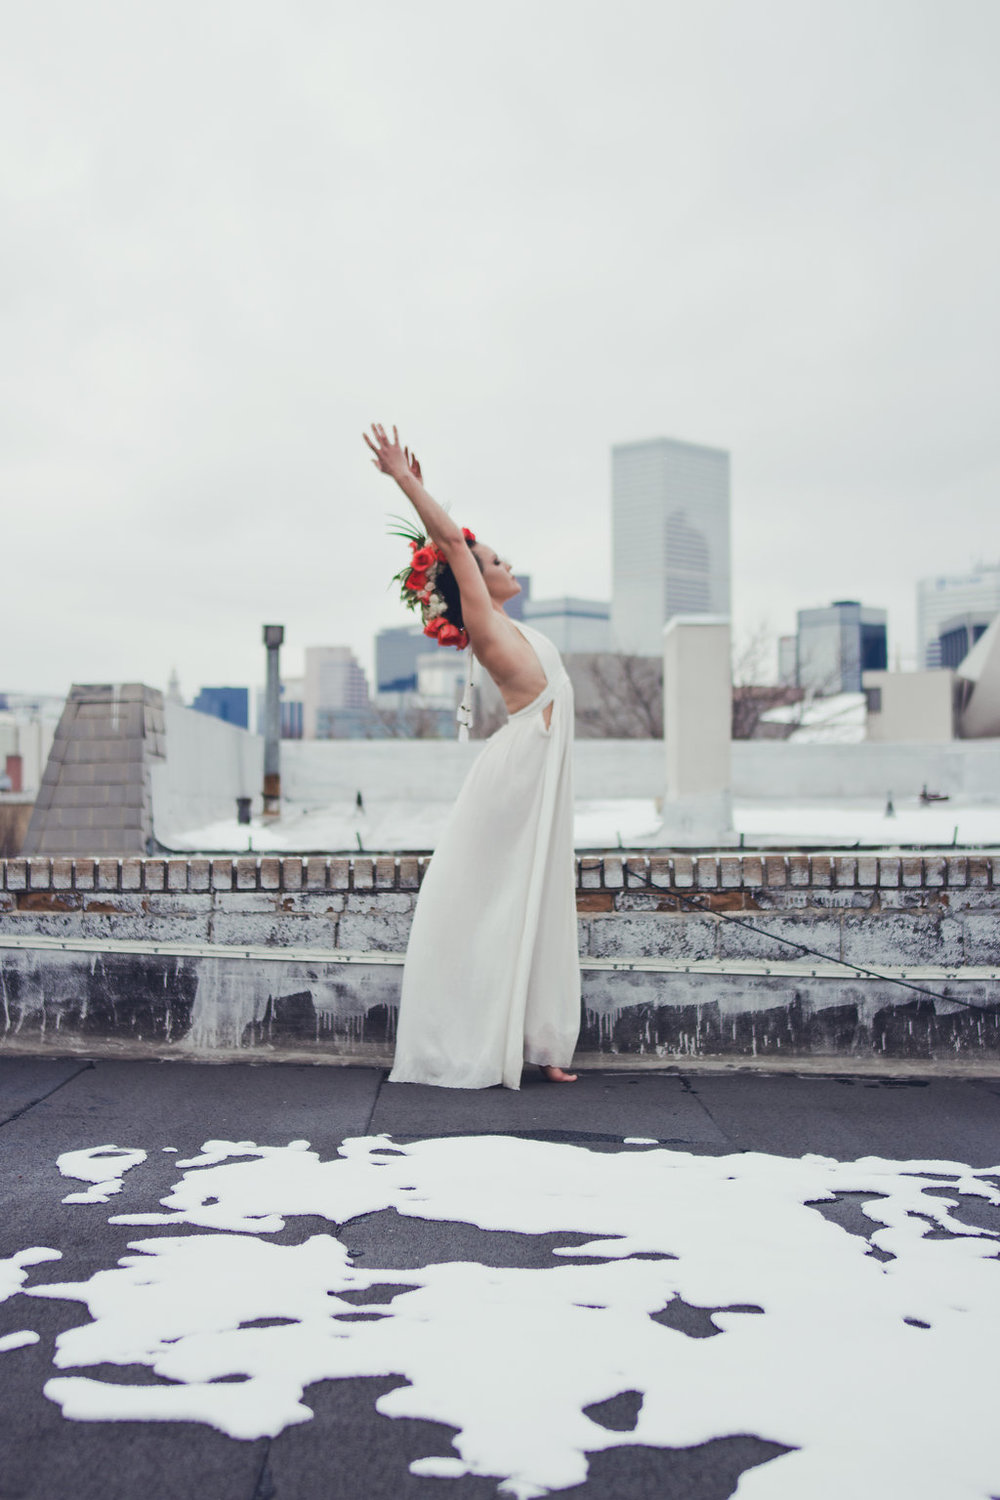 Lisa Rundall Wedding Photography Colorado model stretching back on snowy roof